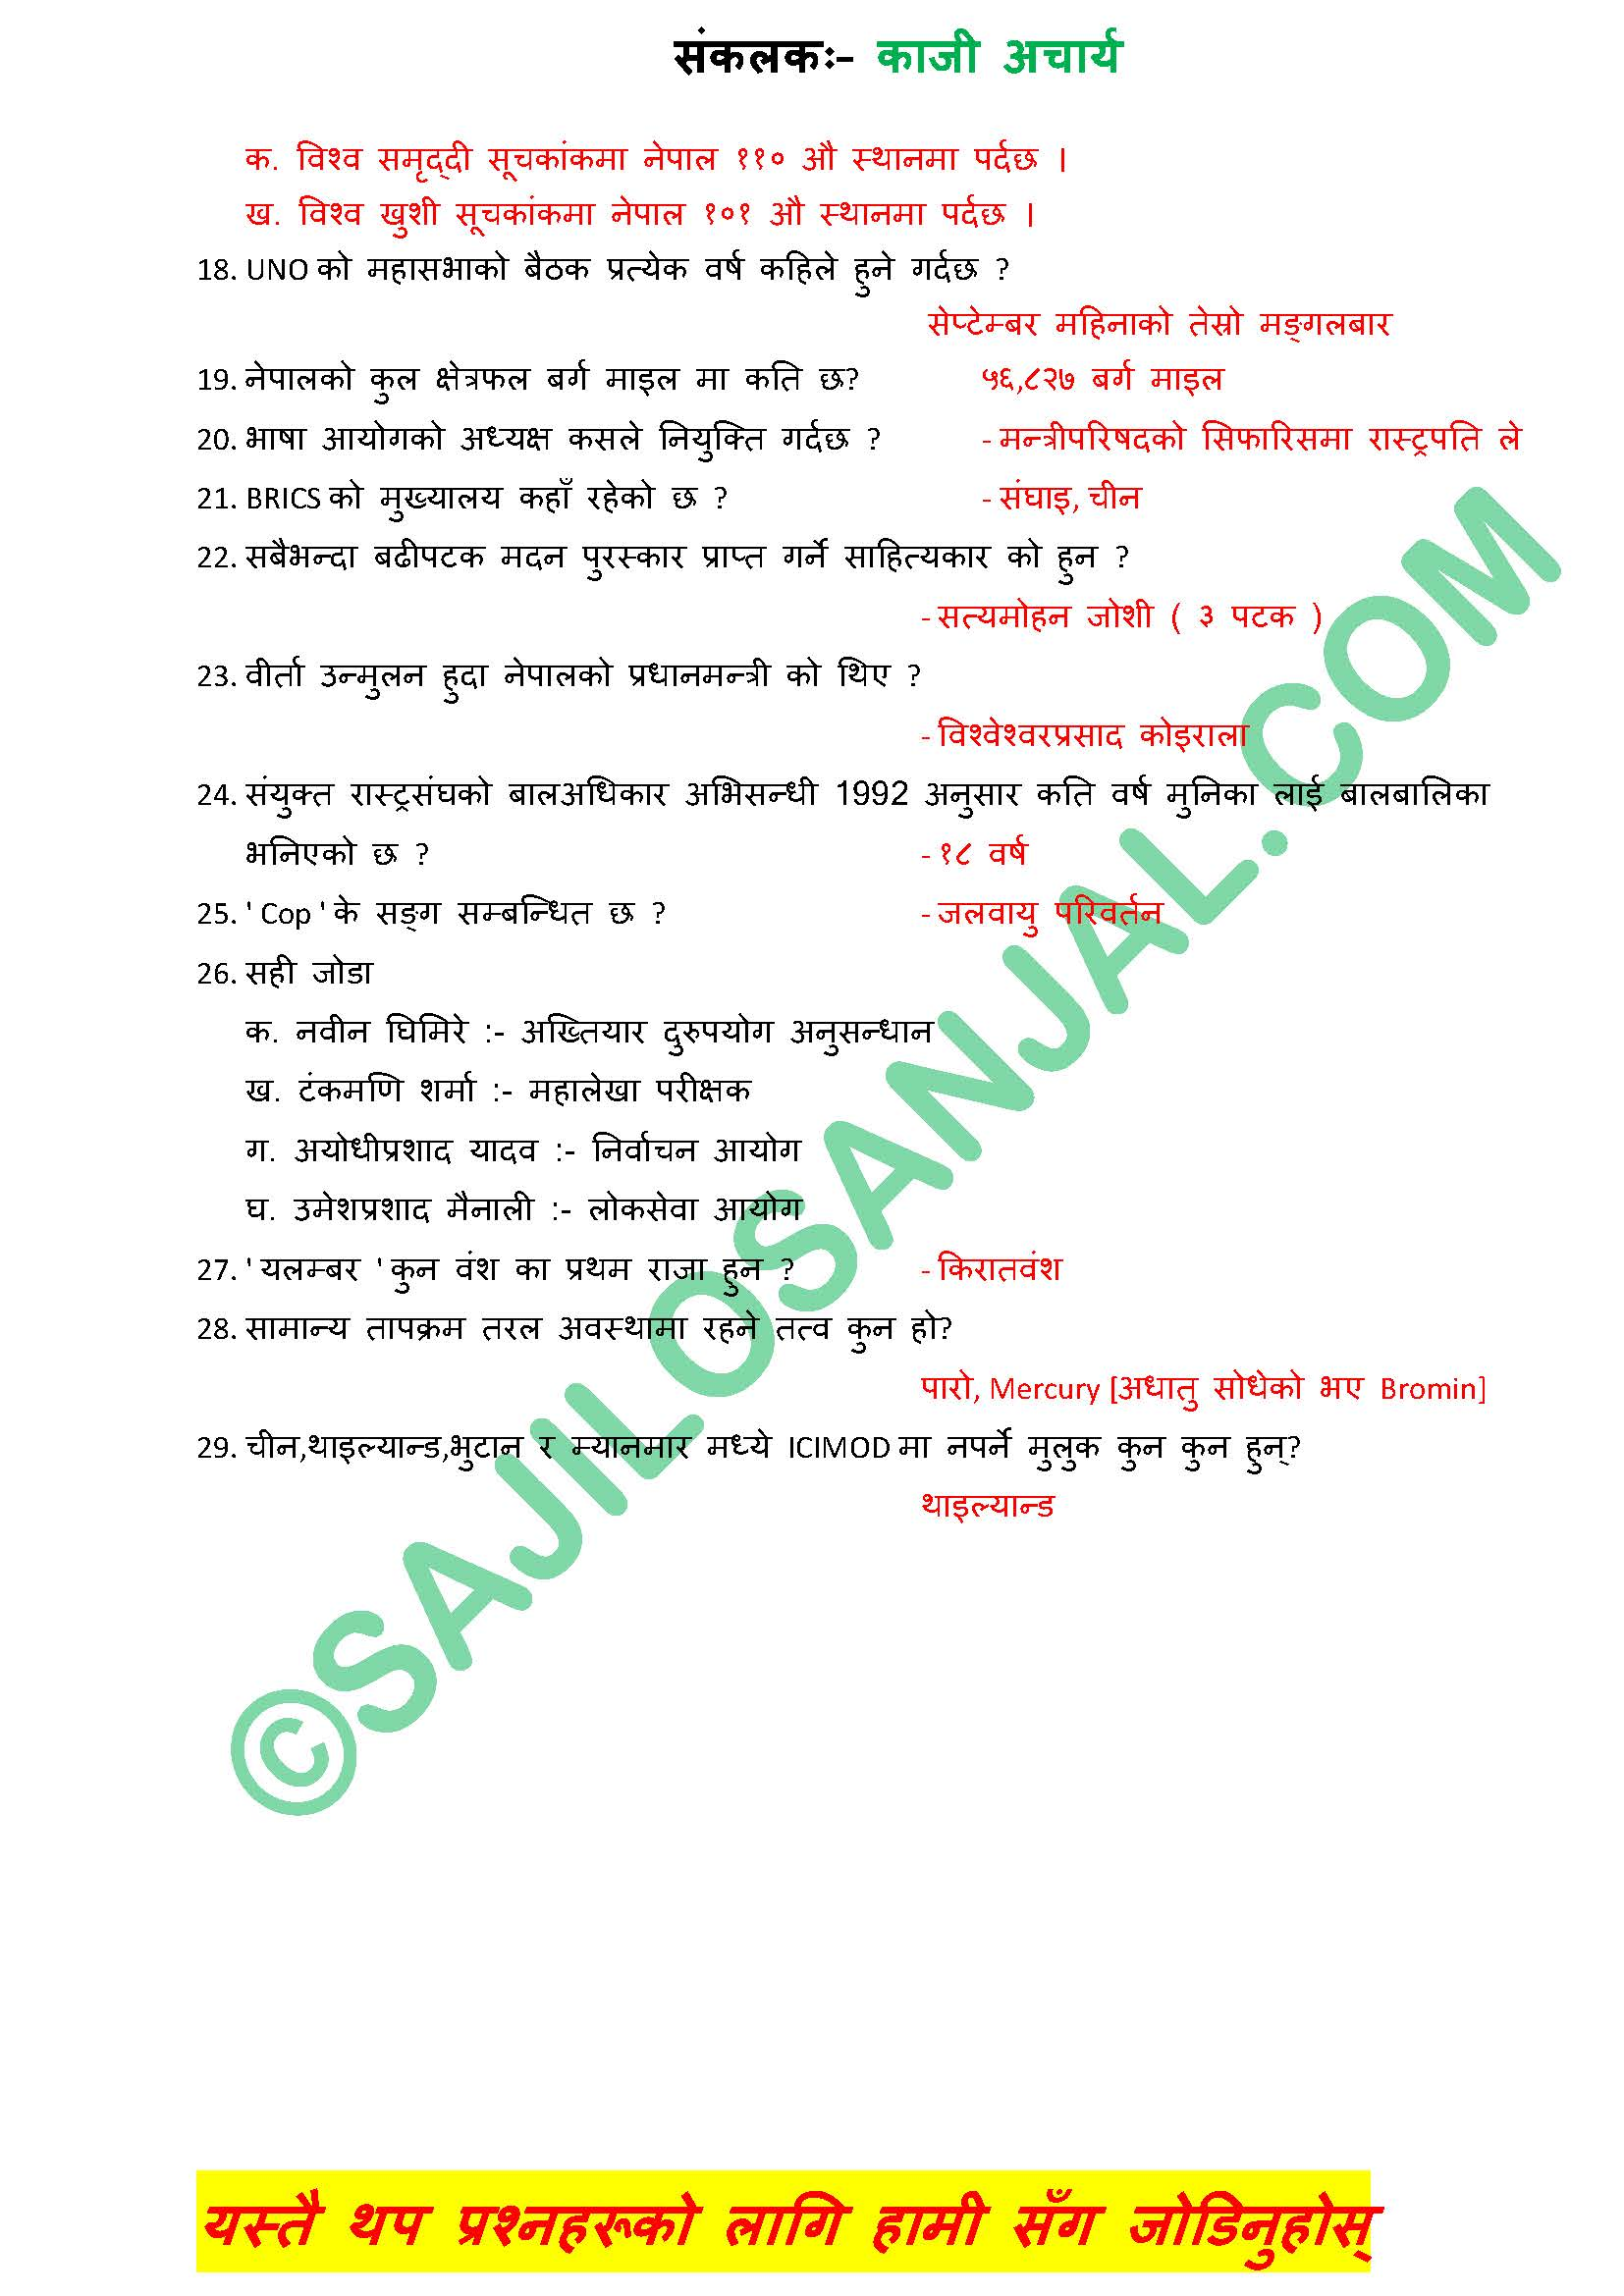 officer question answer officer question, lok sewa question,  lok officer question shakha adhikrit question